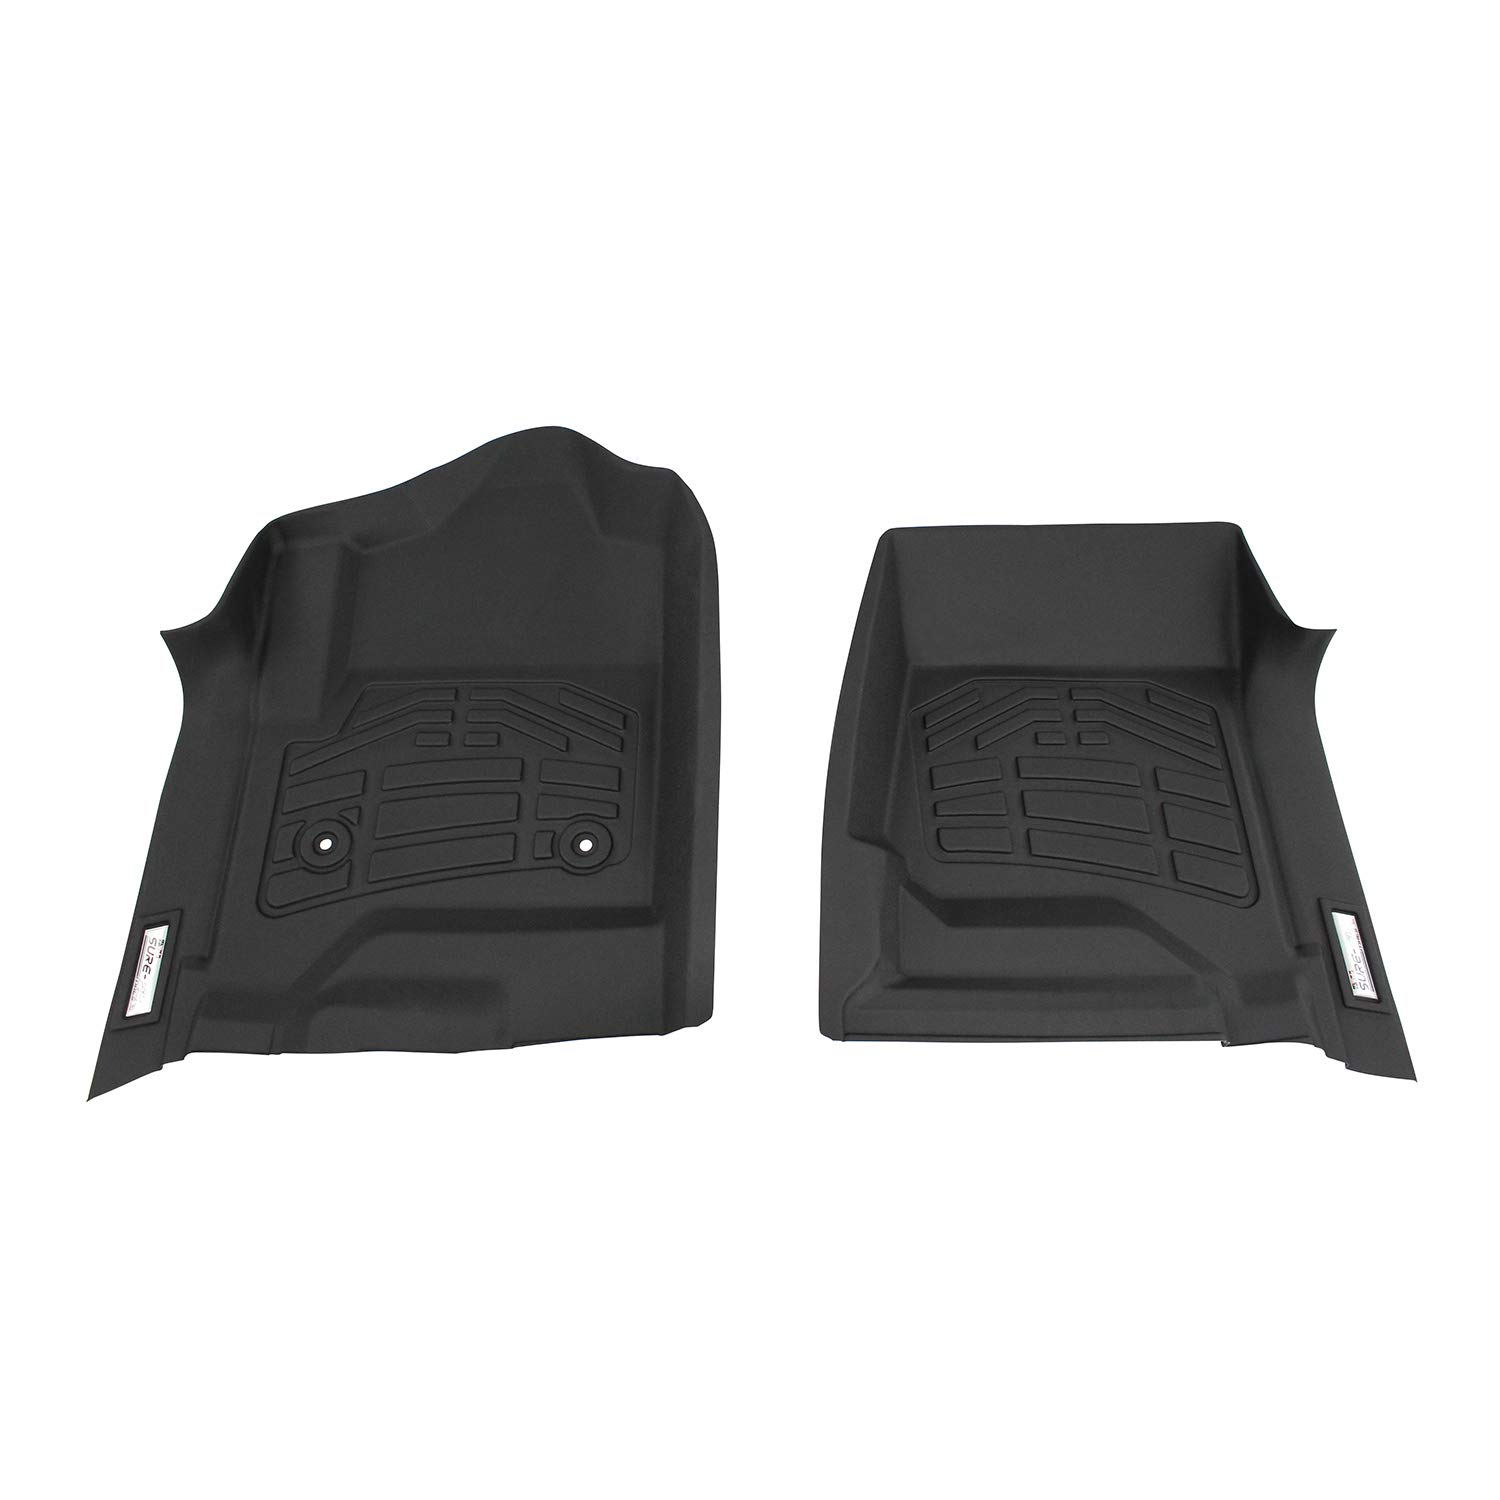 1 Piece Floor Mat For Ram 1500 Floor Mats Weathertech